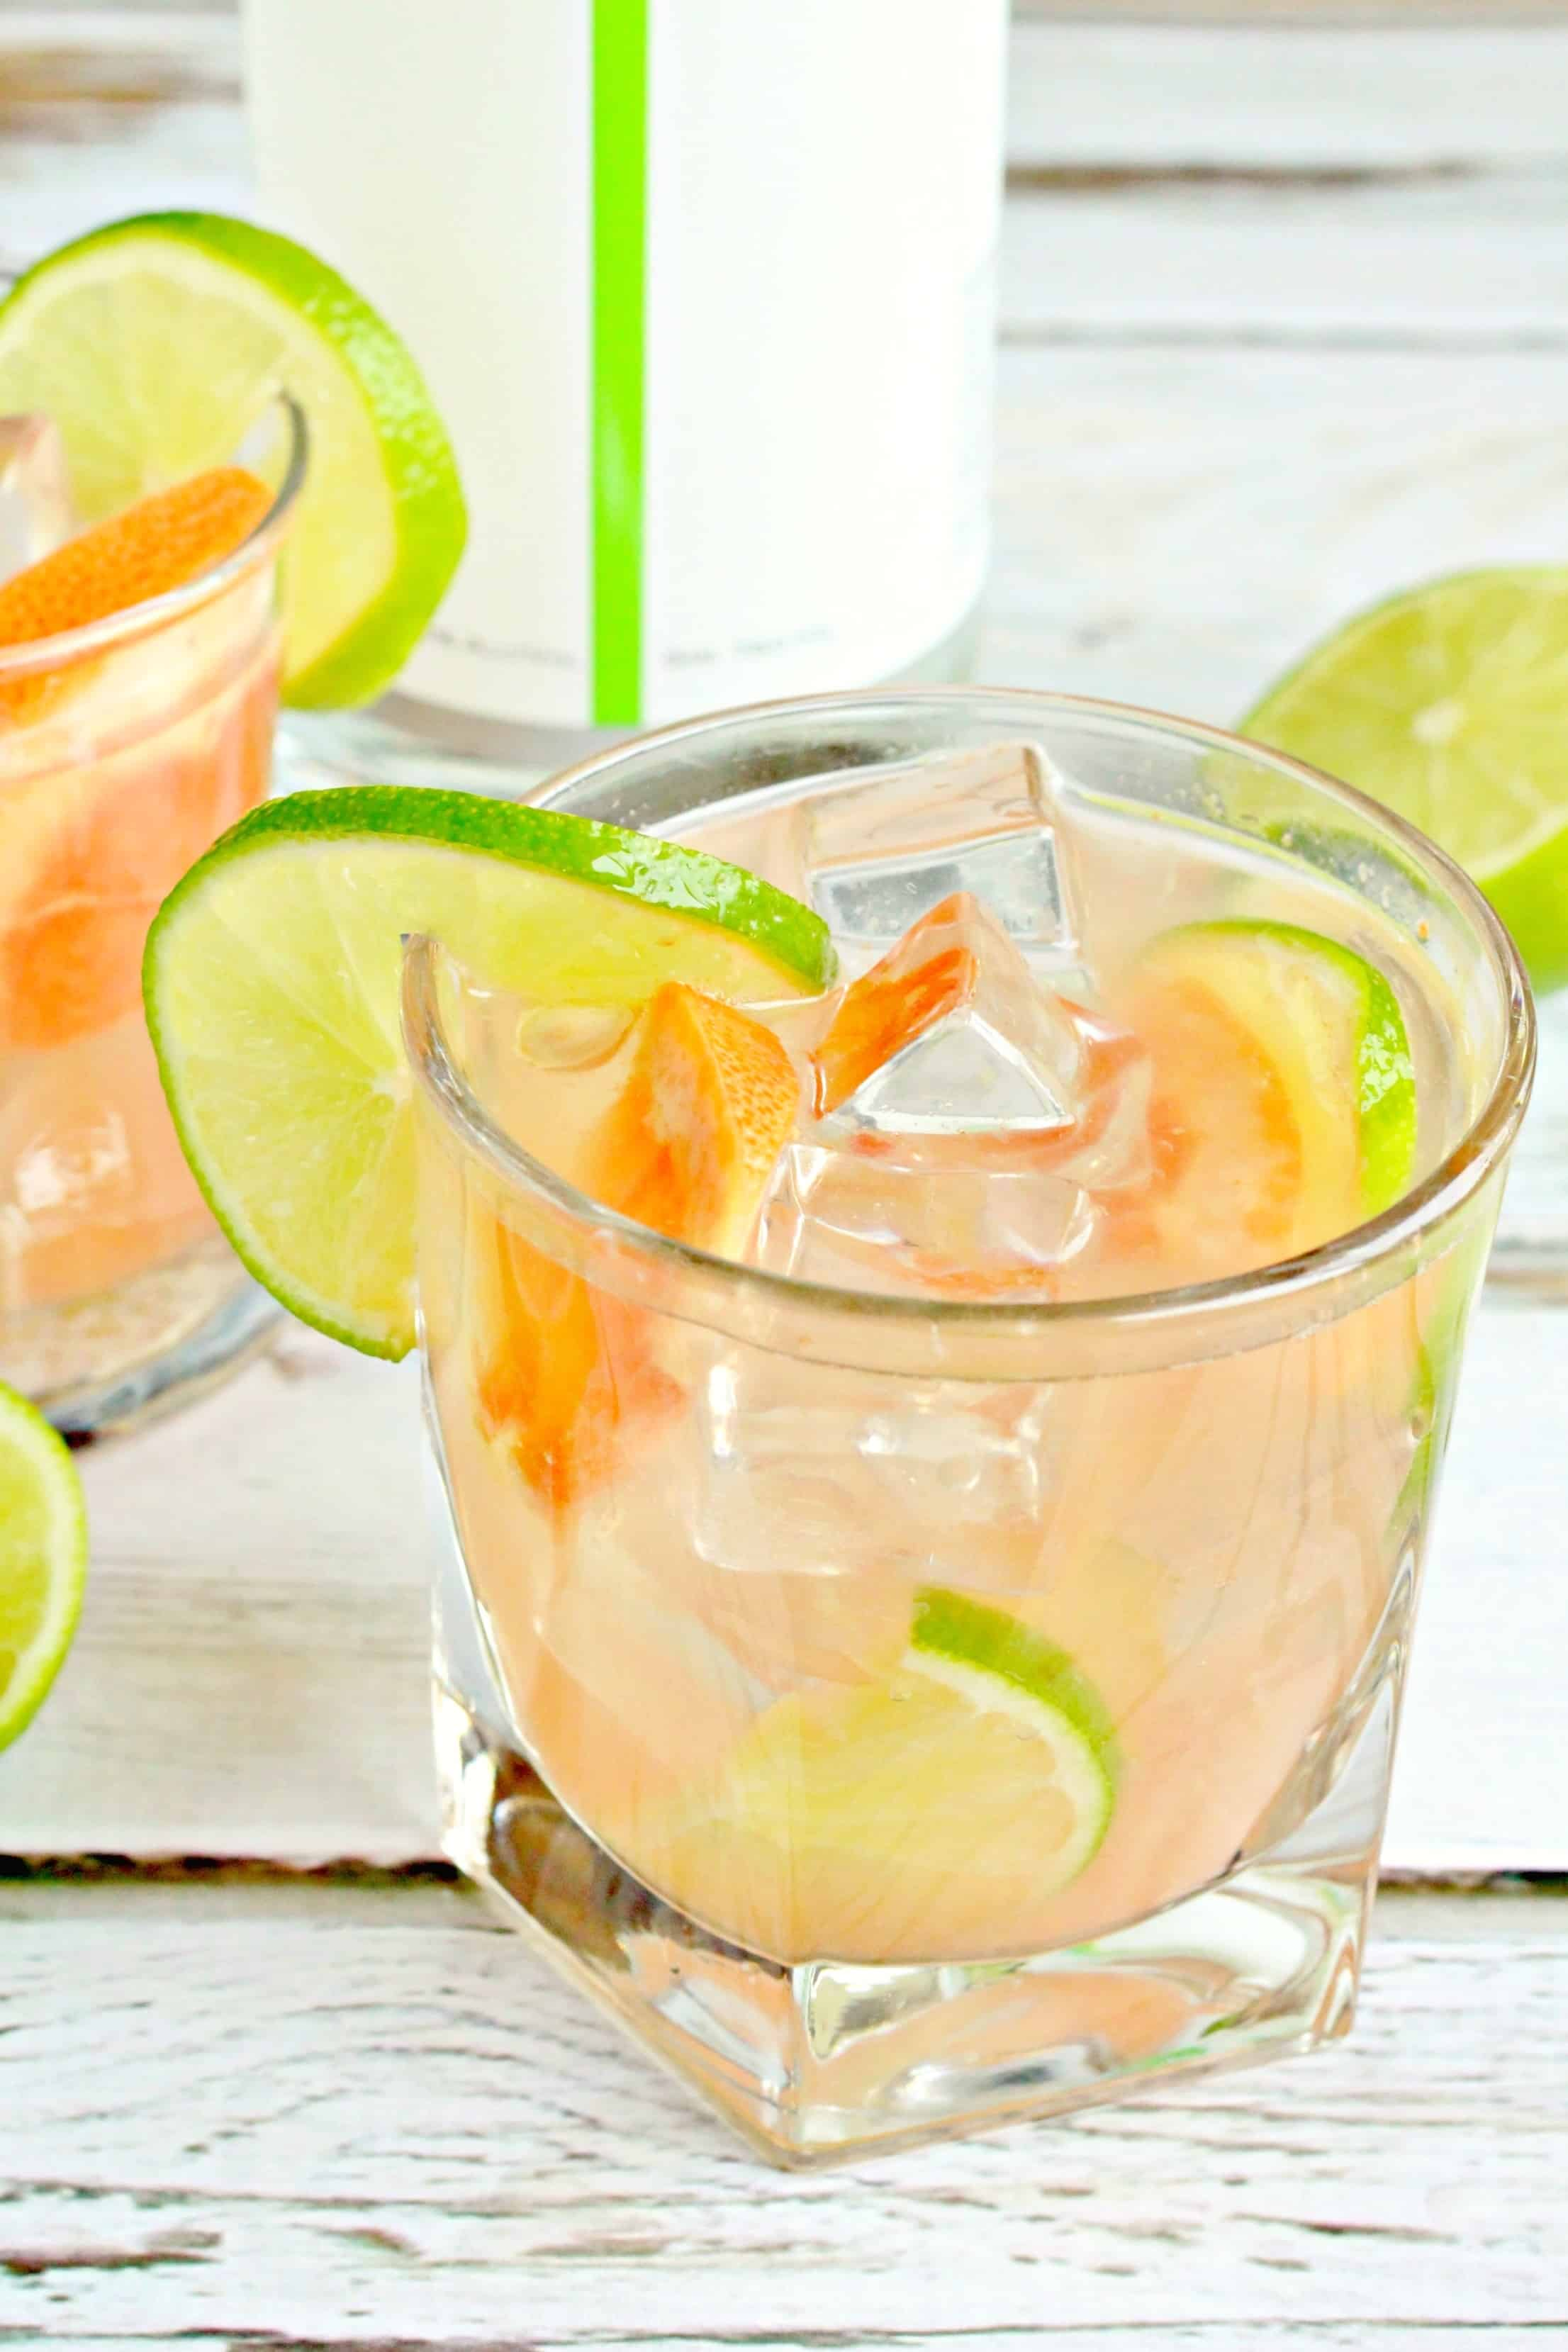 ... you are looking for a crisp cocktail infused with lime and grapefruit